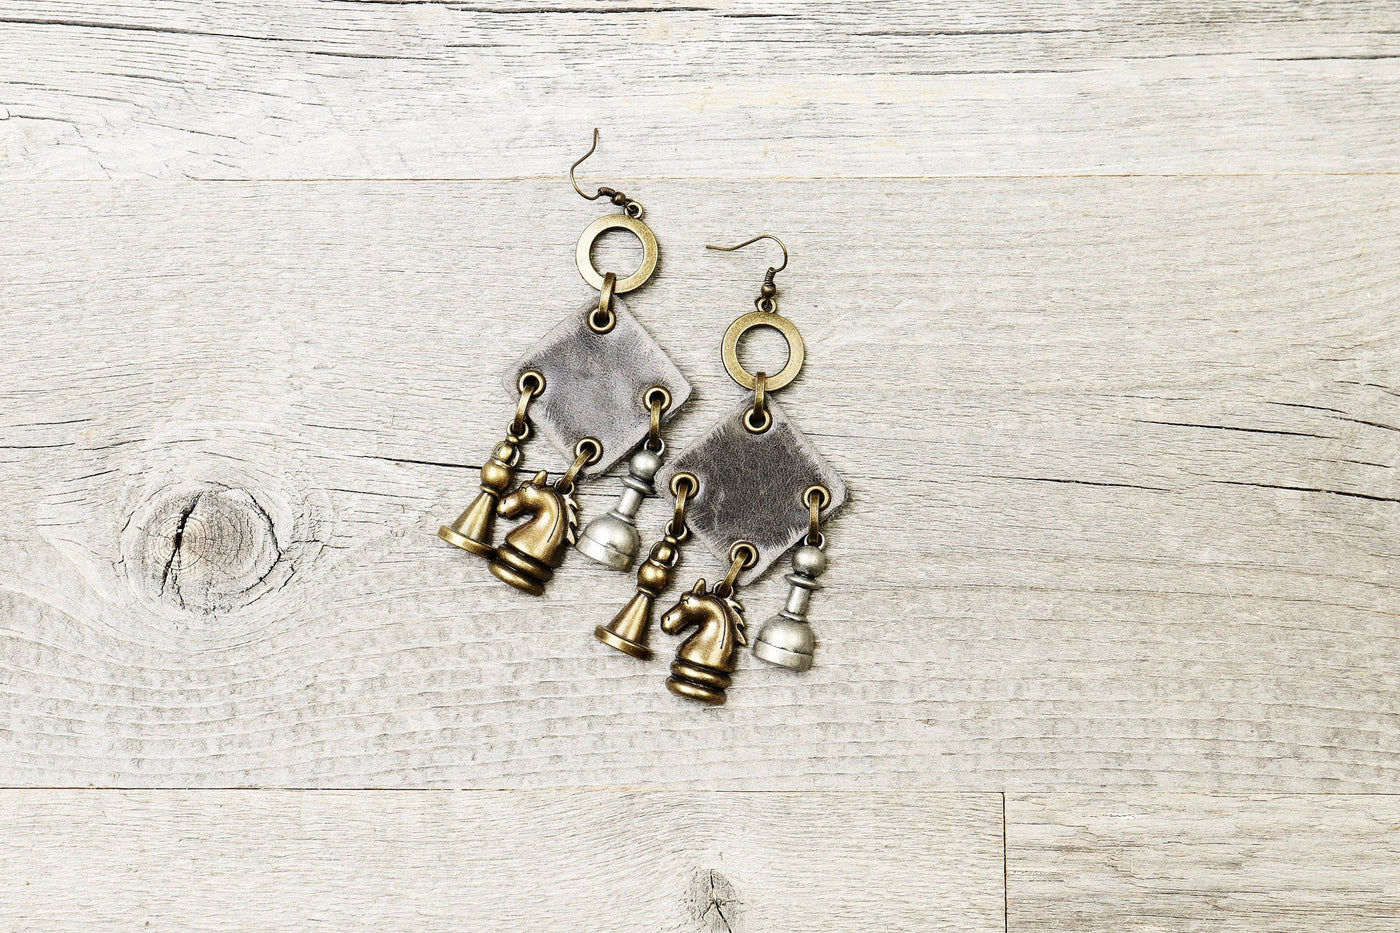 Chess Piece Leather Boho Earrings - Knight Bishop Pawn Horse Game Statement Gray Smart Gift for Her Square Unique Bohemian Handmade Jewelry